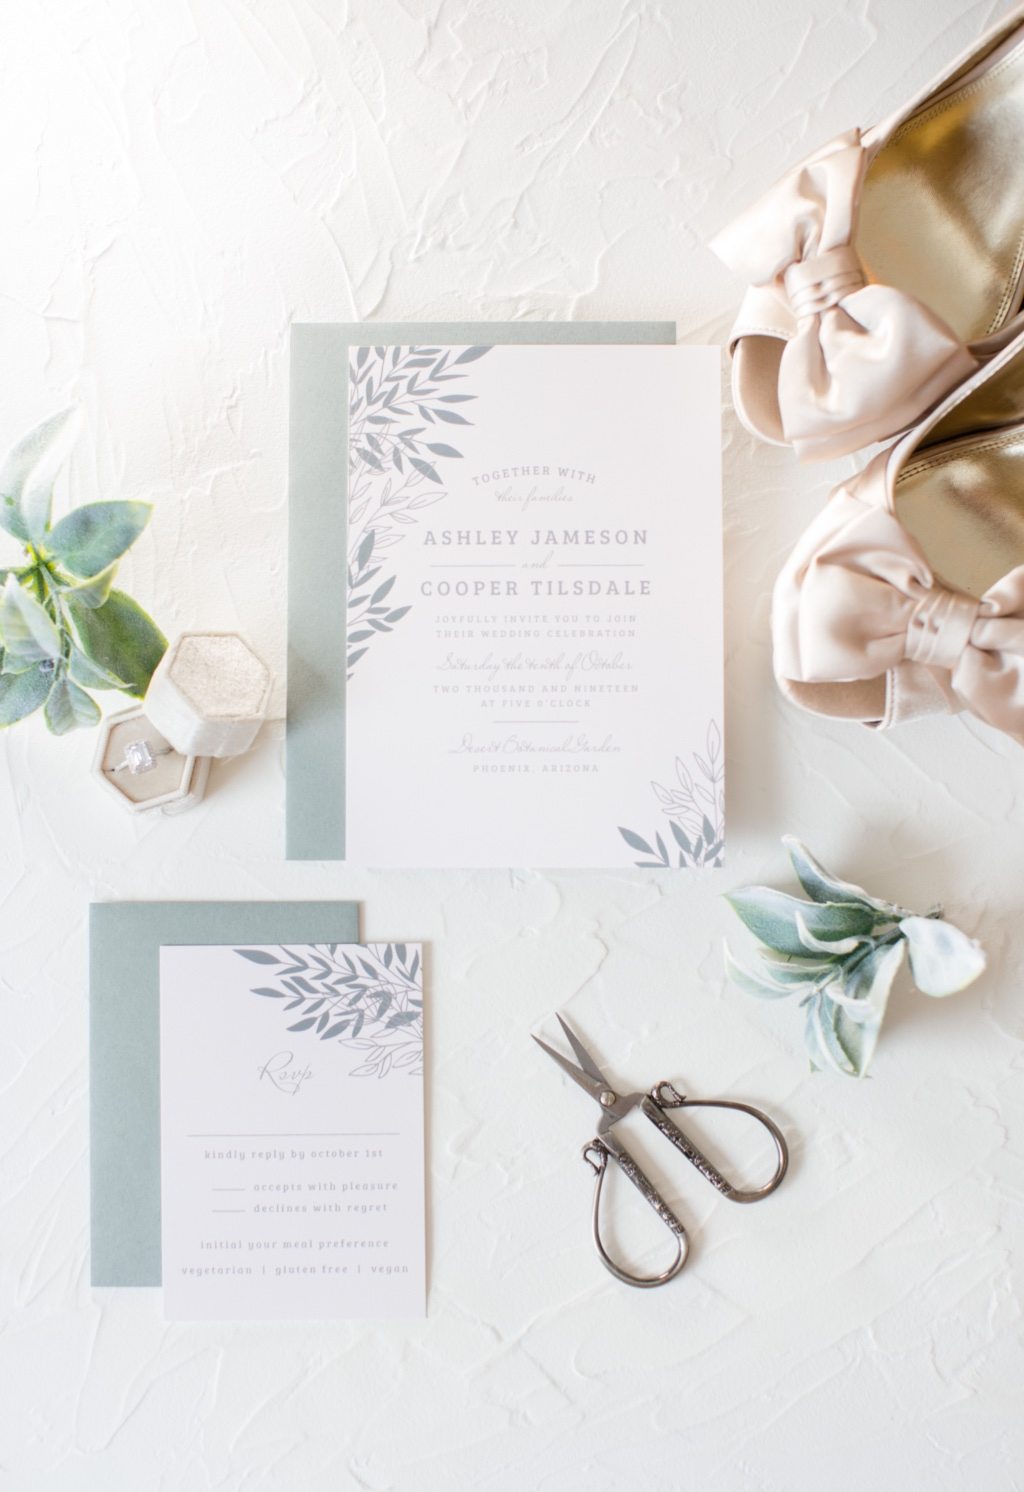 Our Lakeside Leaves Wedding Invitations Suite is Perfect for your neutral, lovely, nuptials.